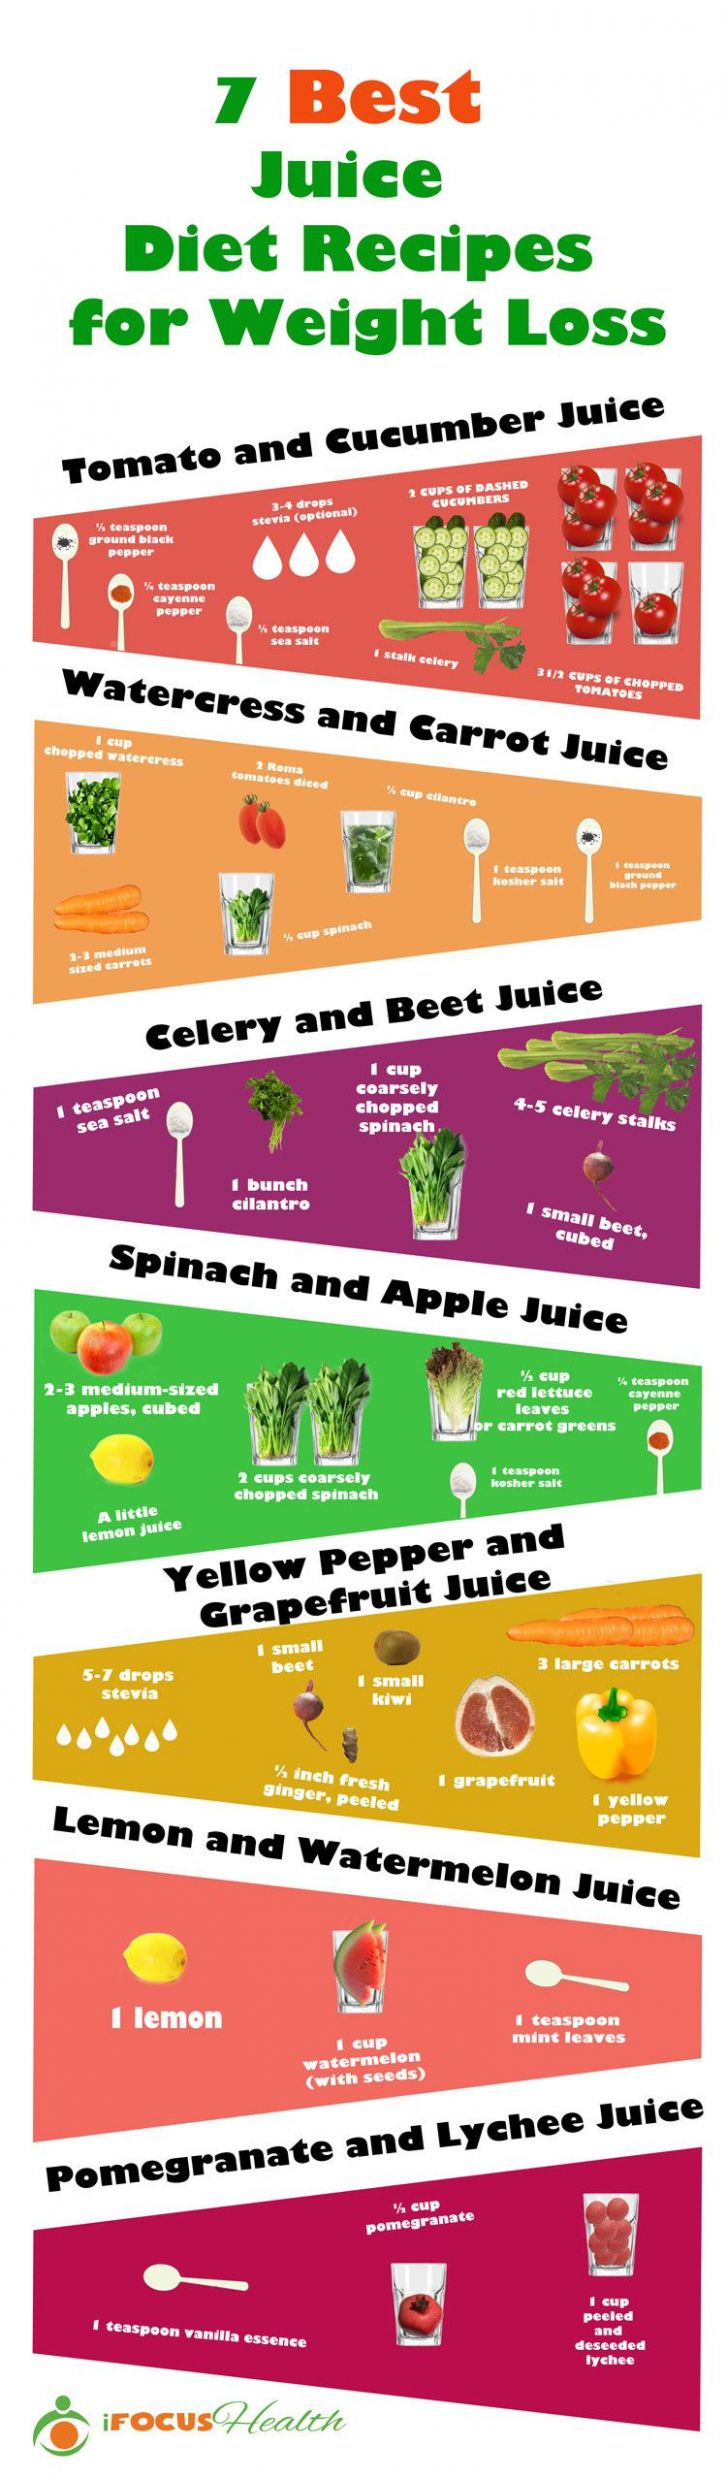 9 Simple Juicing Recipes for Weight Loss (Infographic) - Weight Loss Juice Recipes That Taste Good